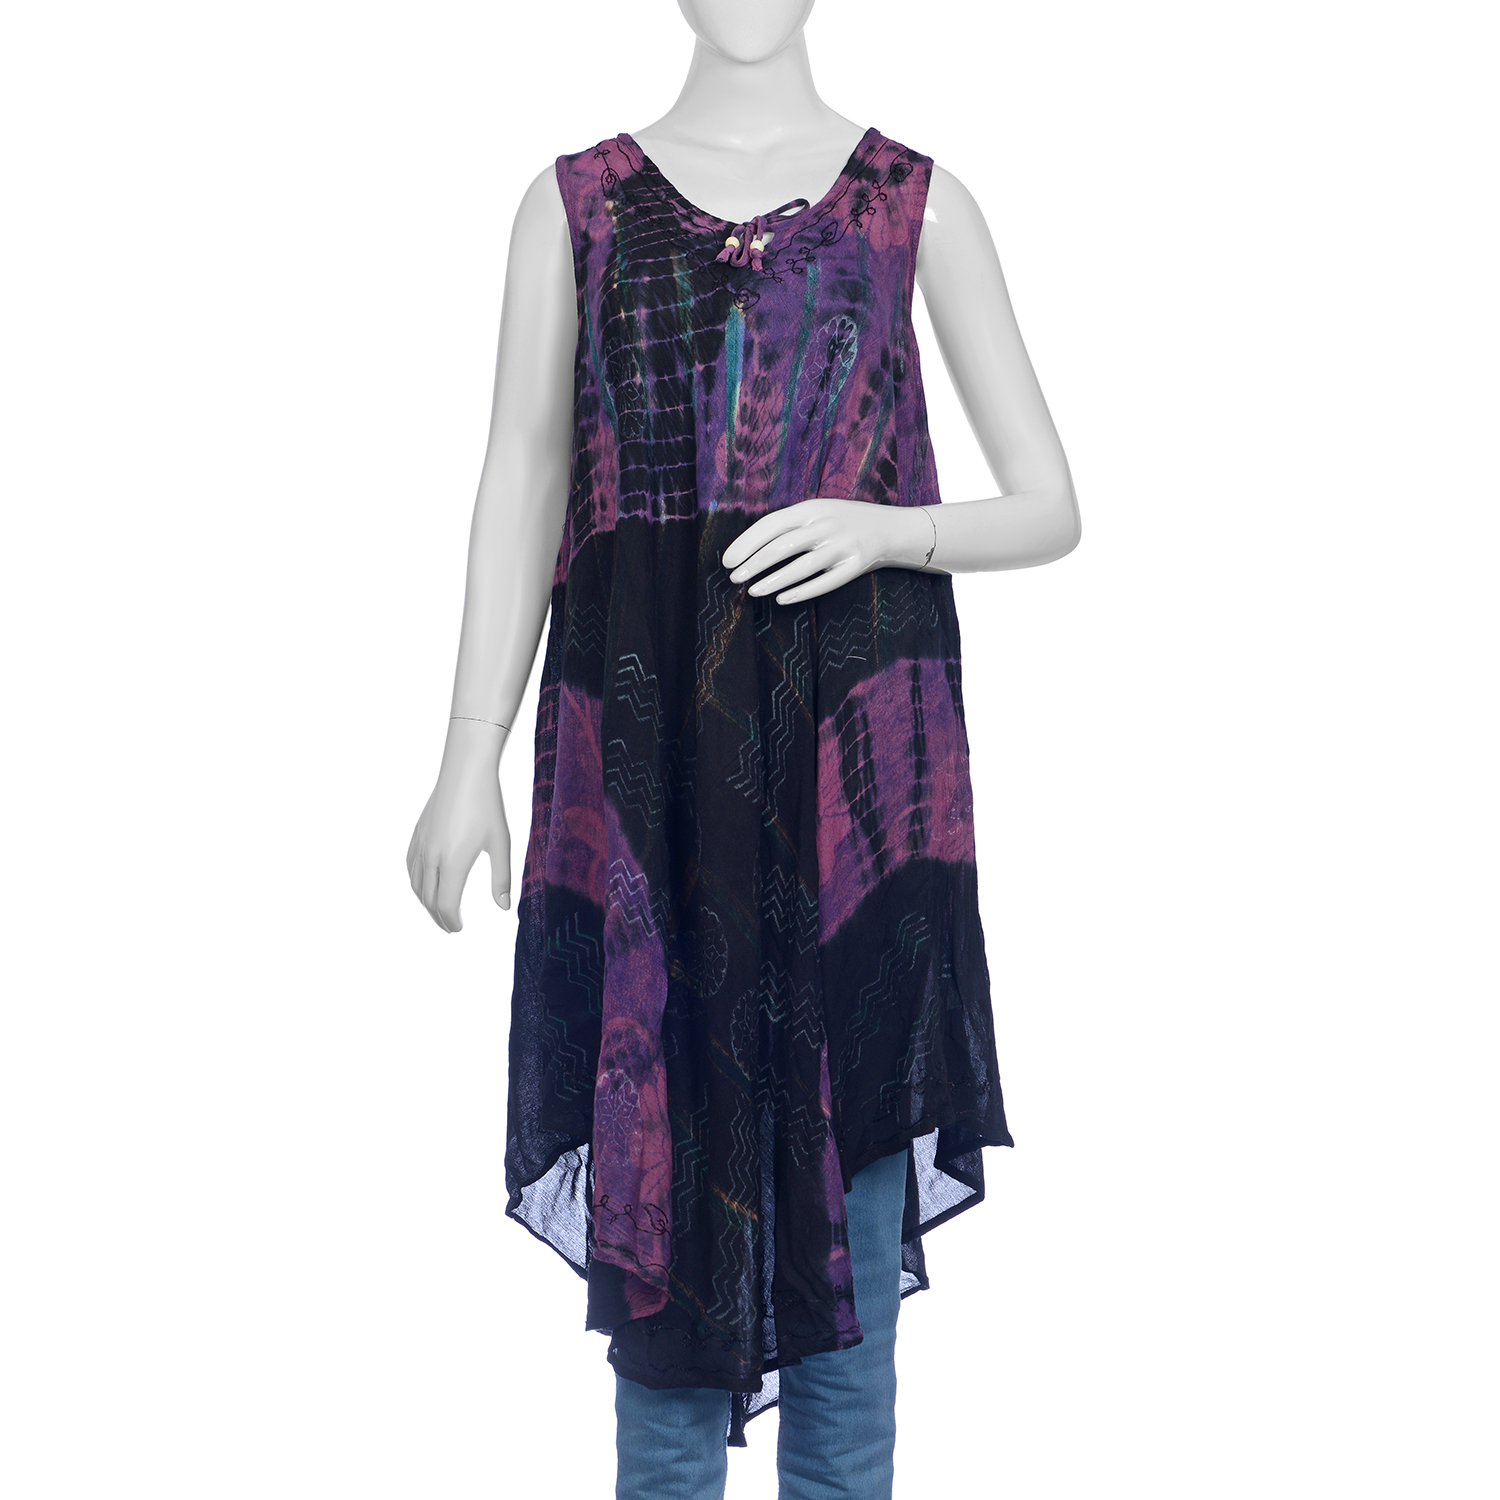 Black Tie & Dye And Block Printed Umbrella Dress (48x44